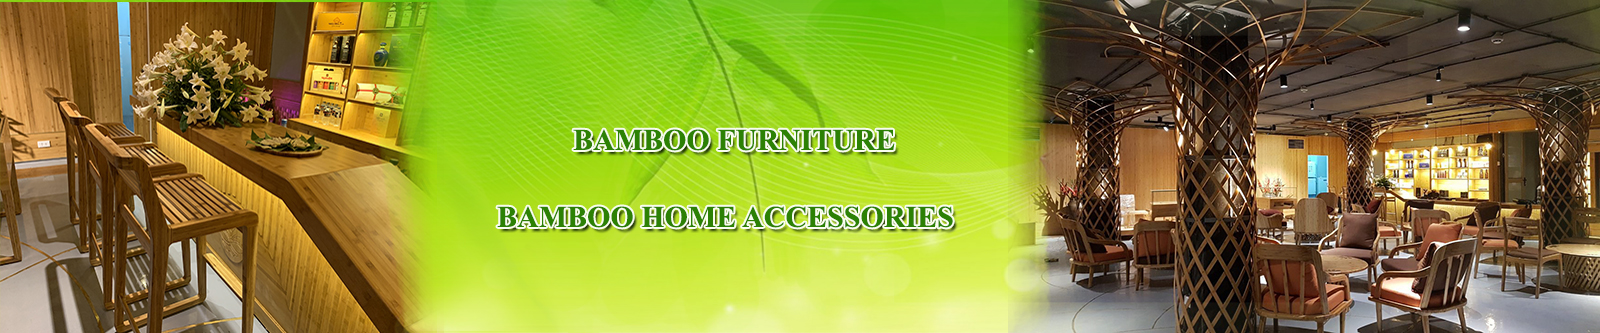 Bamboo Furniture & Accessories